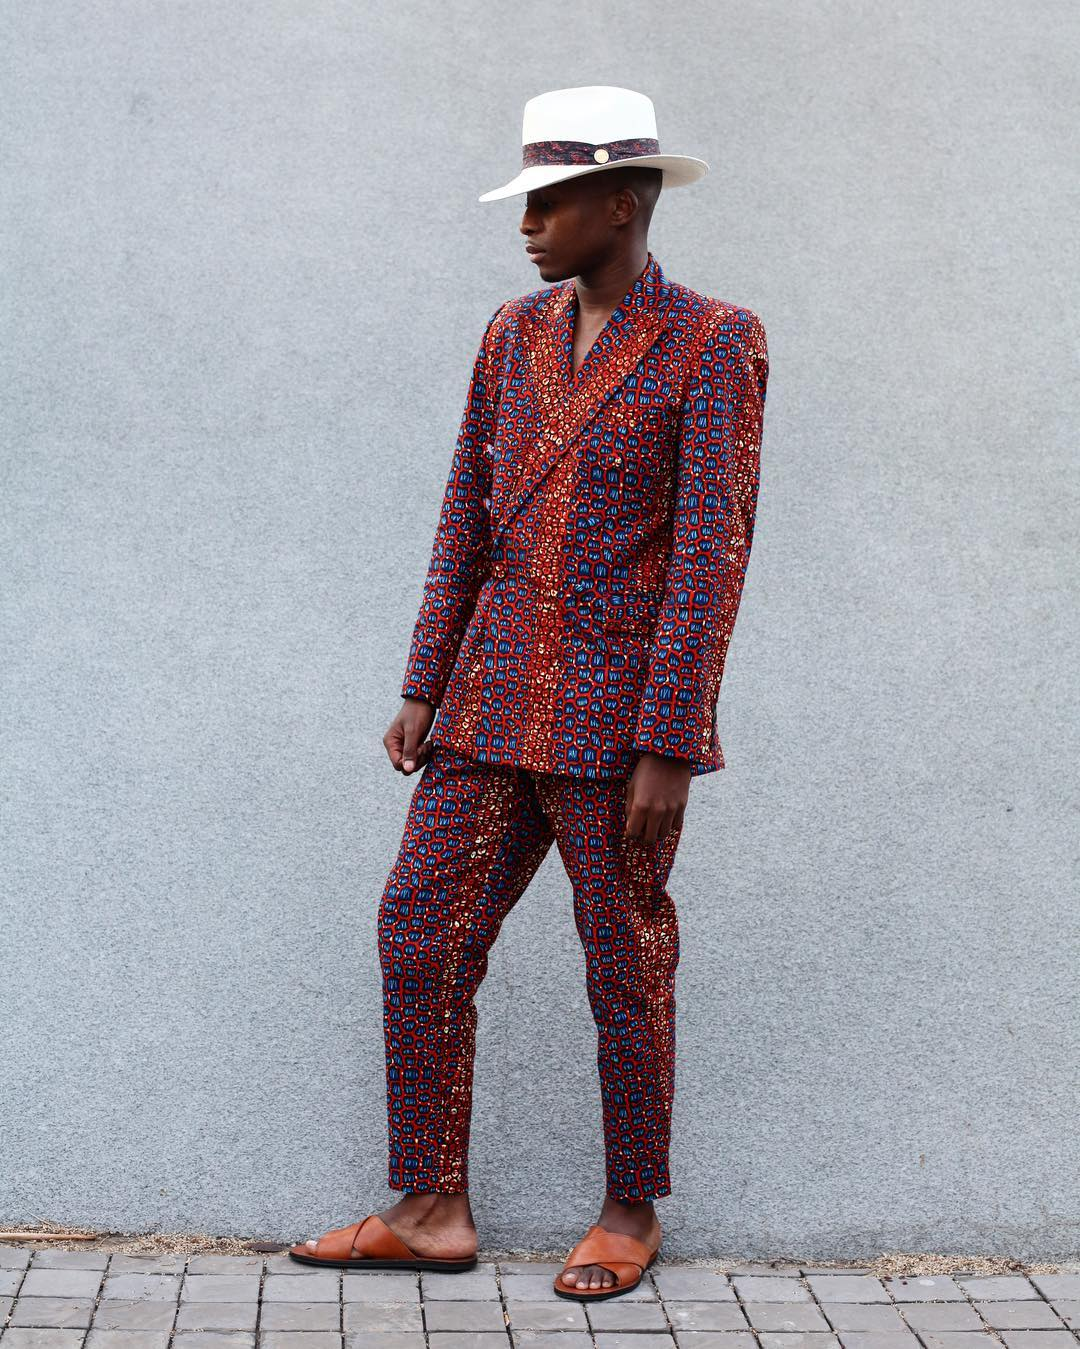 ankara-street-style-of-the-day-trevor-stuurman-4